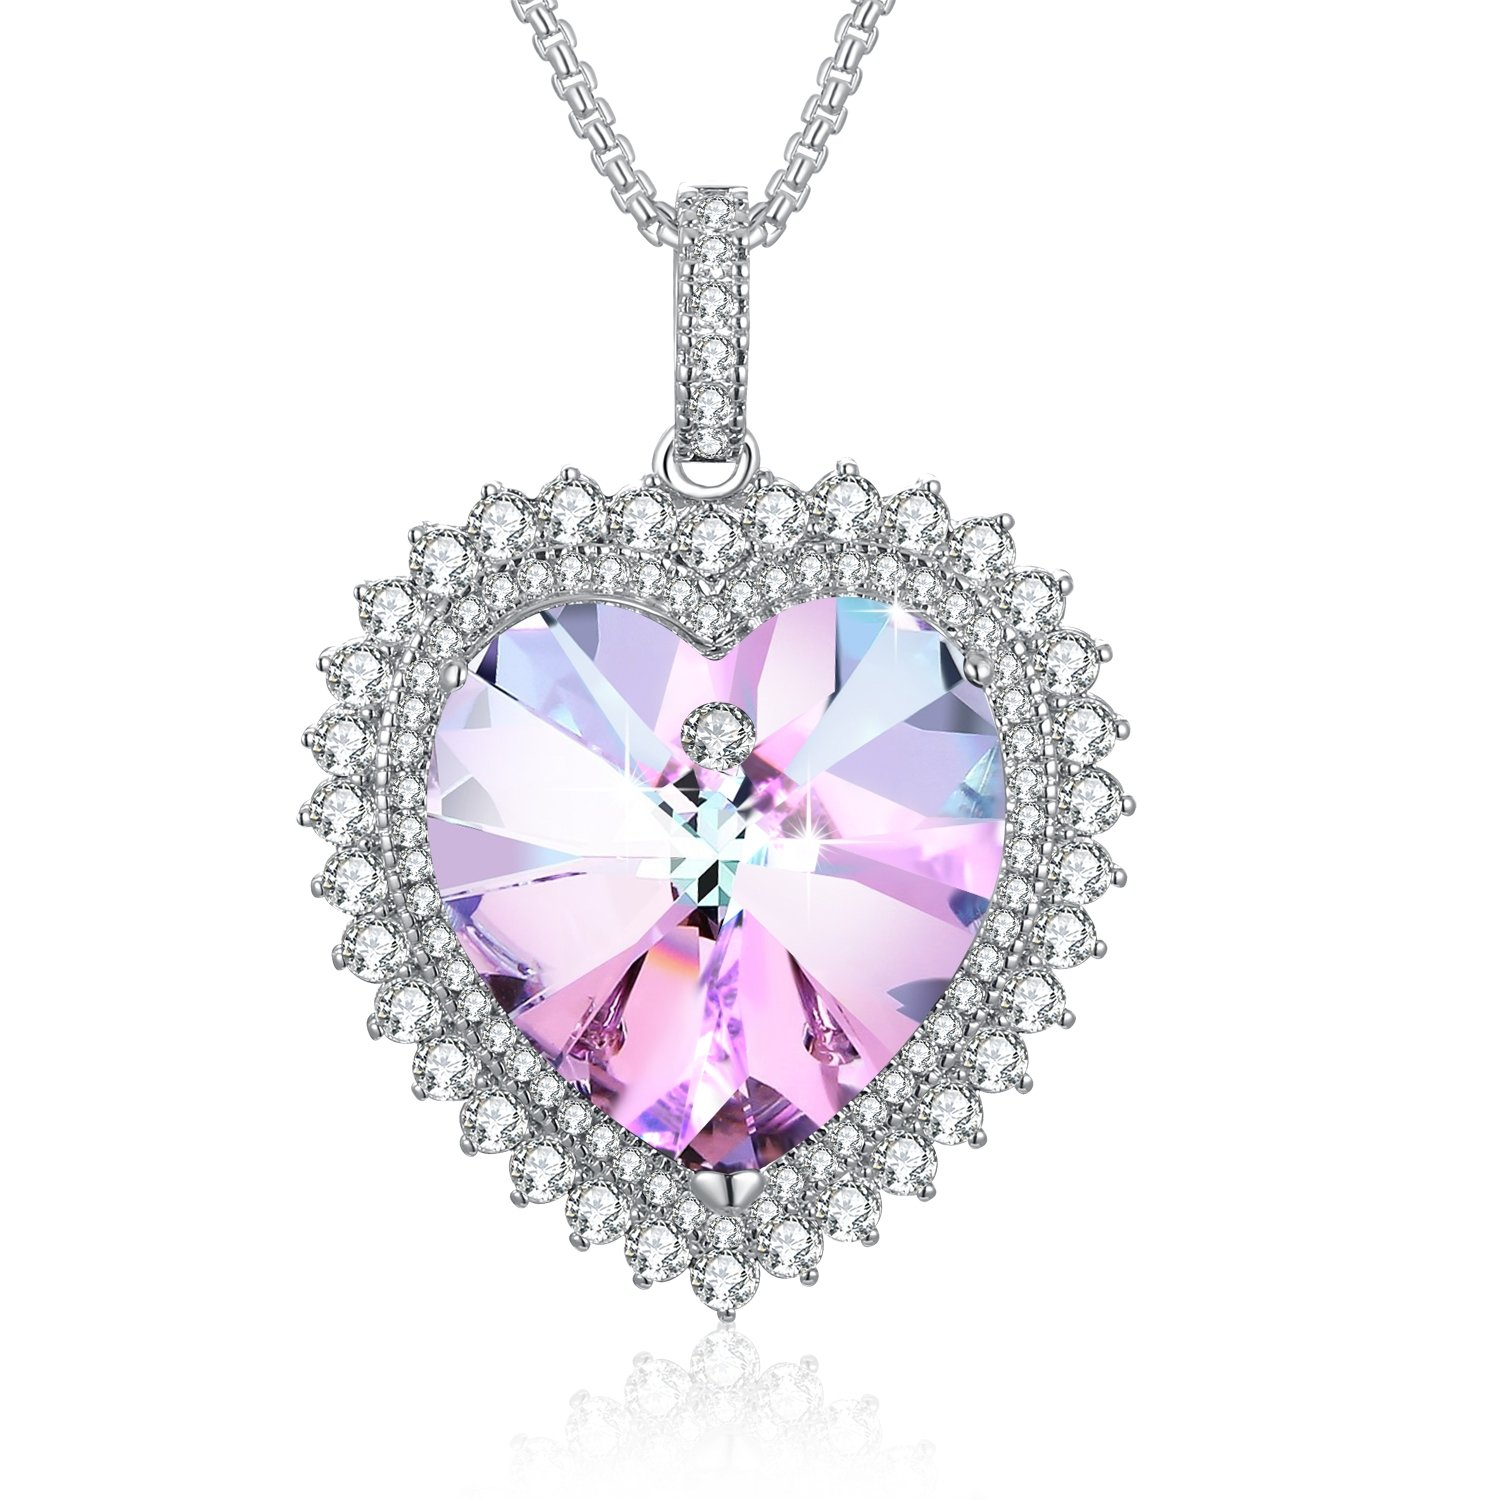 """Deeply Love "" Heart Necklace Birthstone Heart Shape Necklace Plato H Swarovski Elements Crystal Necklace Mother's Day Gifts Birthday Gifts Foe Her"